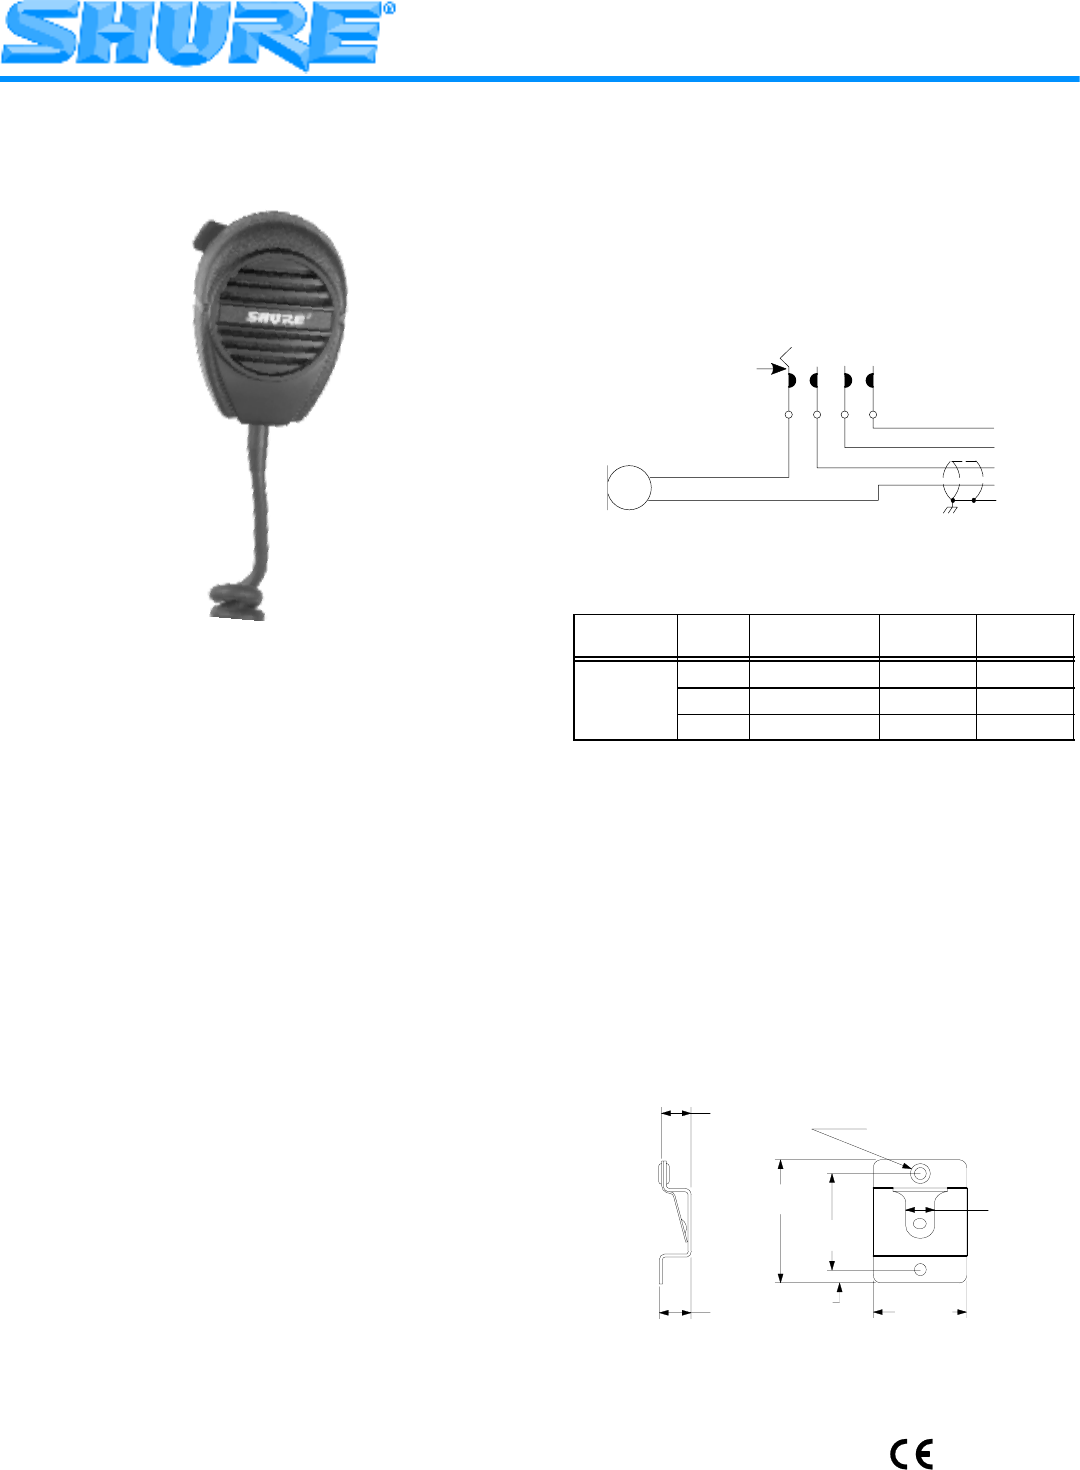 51023184 5c12 4755 a87e ea2d206ace3c bg1 shure 514b wiring diagram \u2022 buccaneersvsrams co Shure Mic Cords at webbmarketing.co